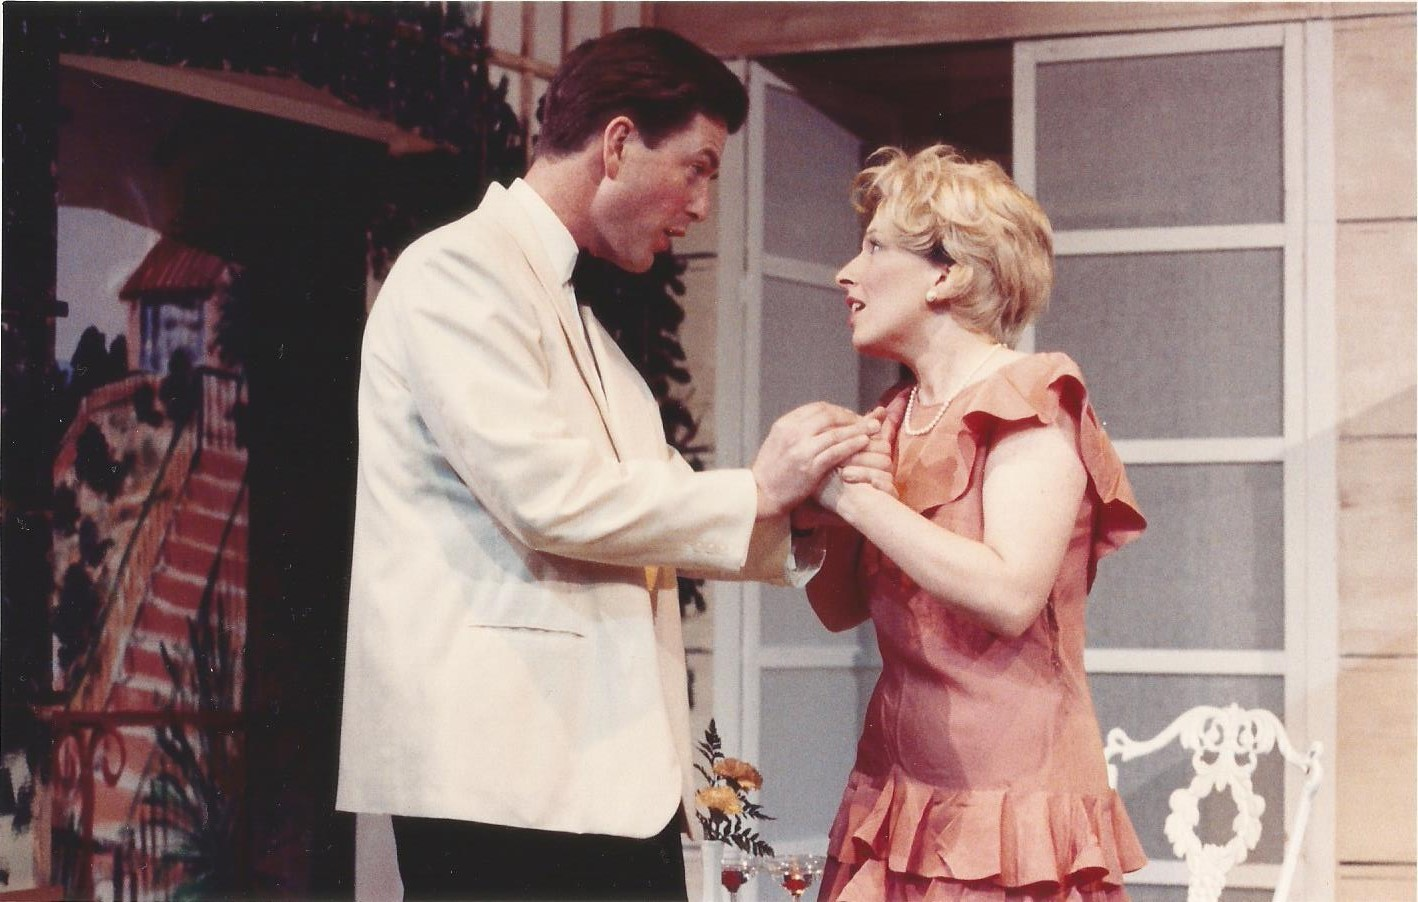 David Bache and Lorraine Smith in Private Lives, 1993